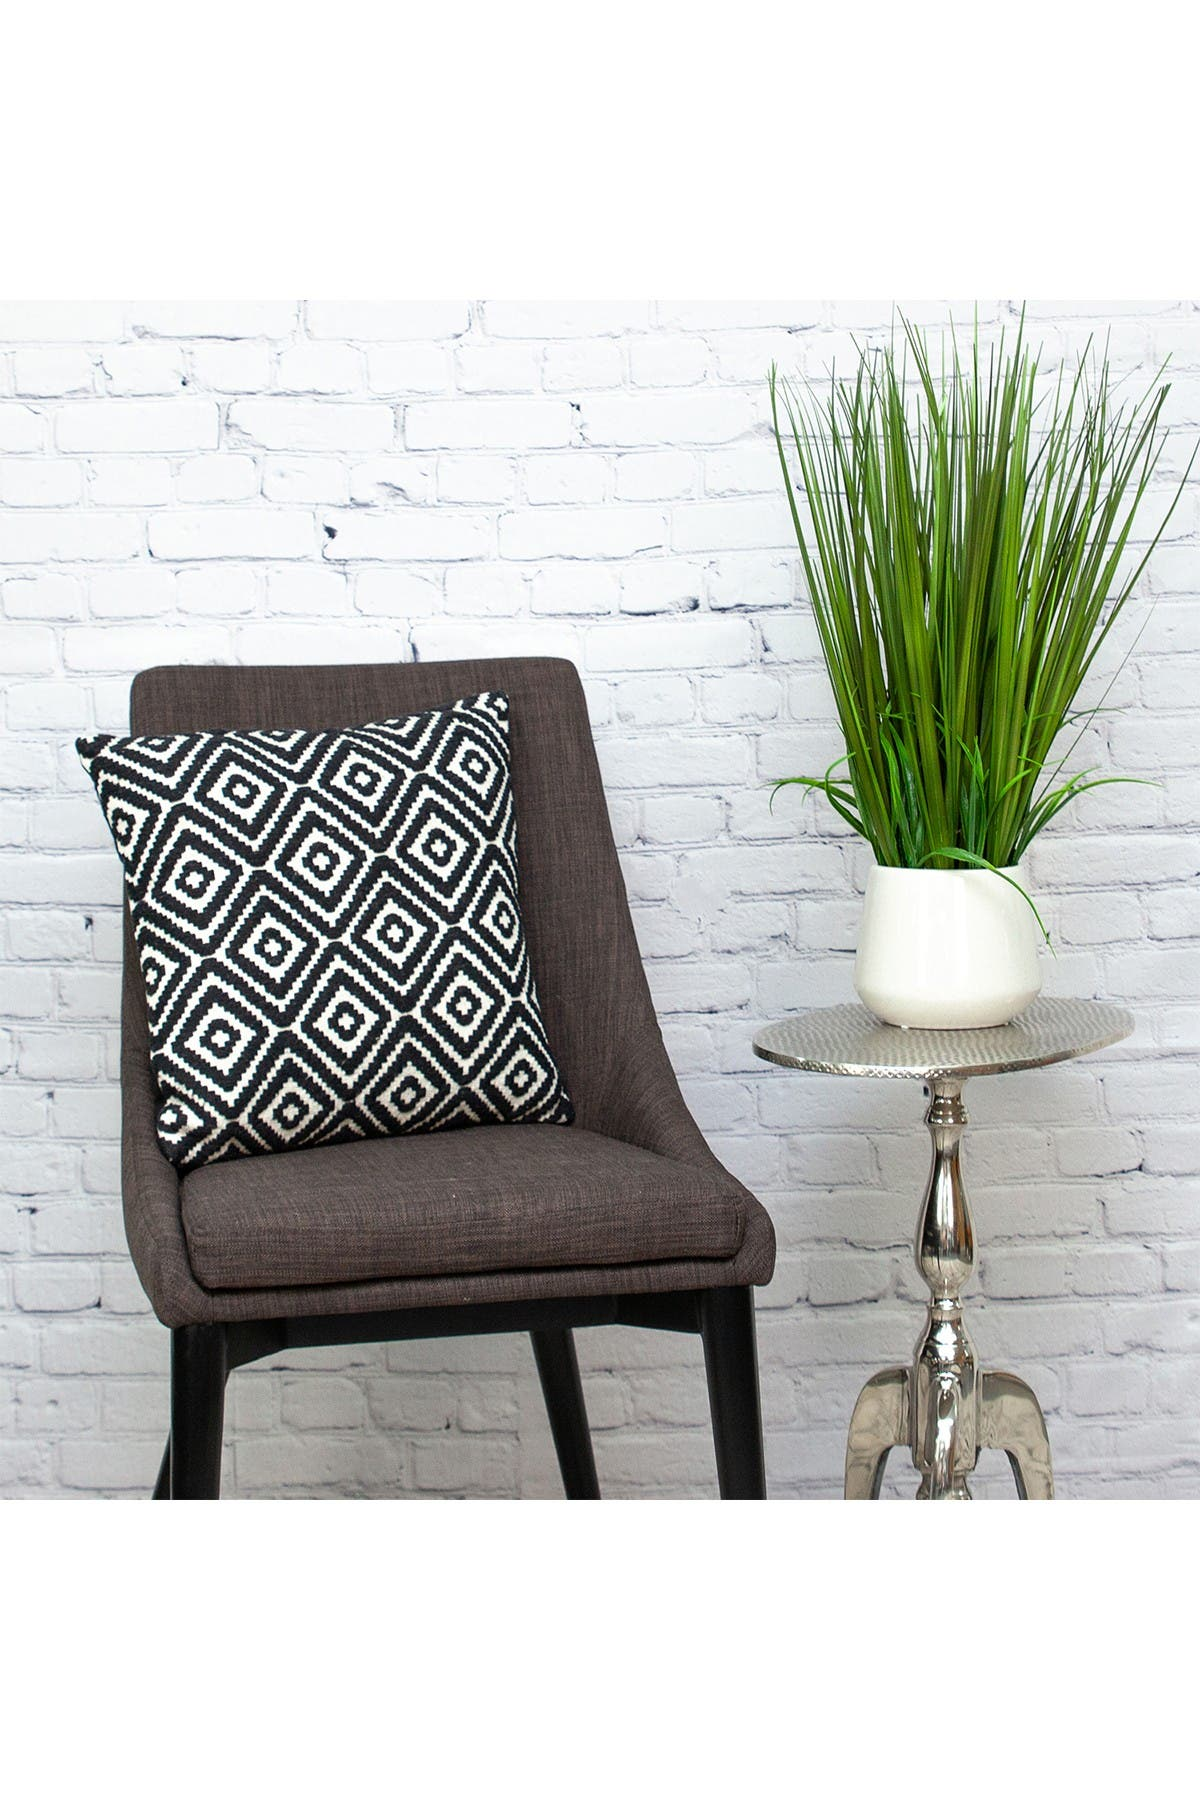 Image of Parkland Collection Kimia Transitional Black Throw Pillow